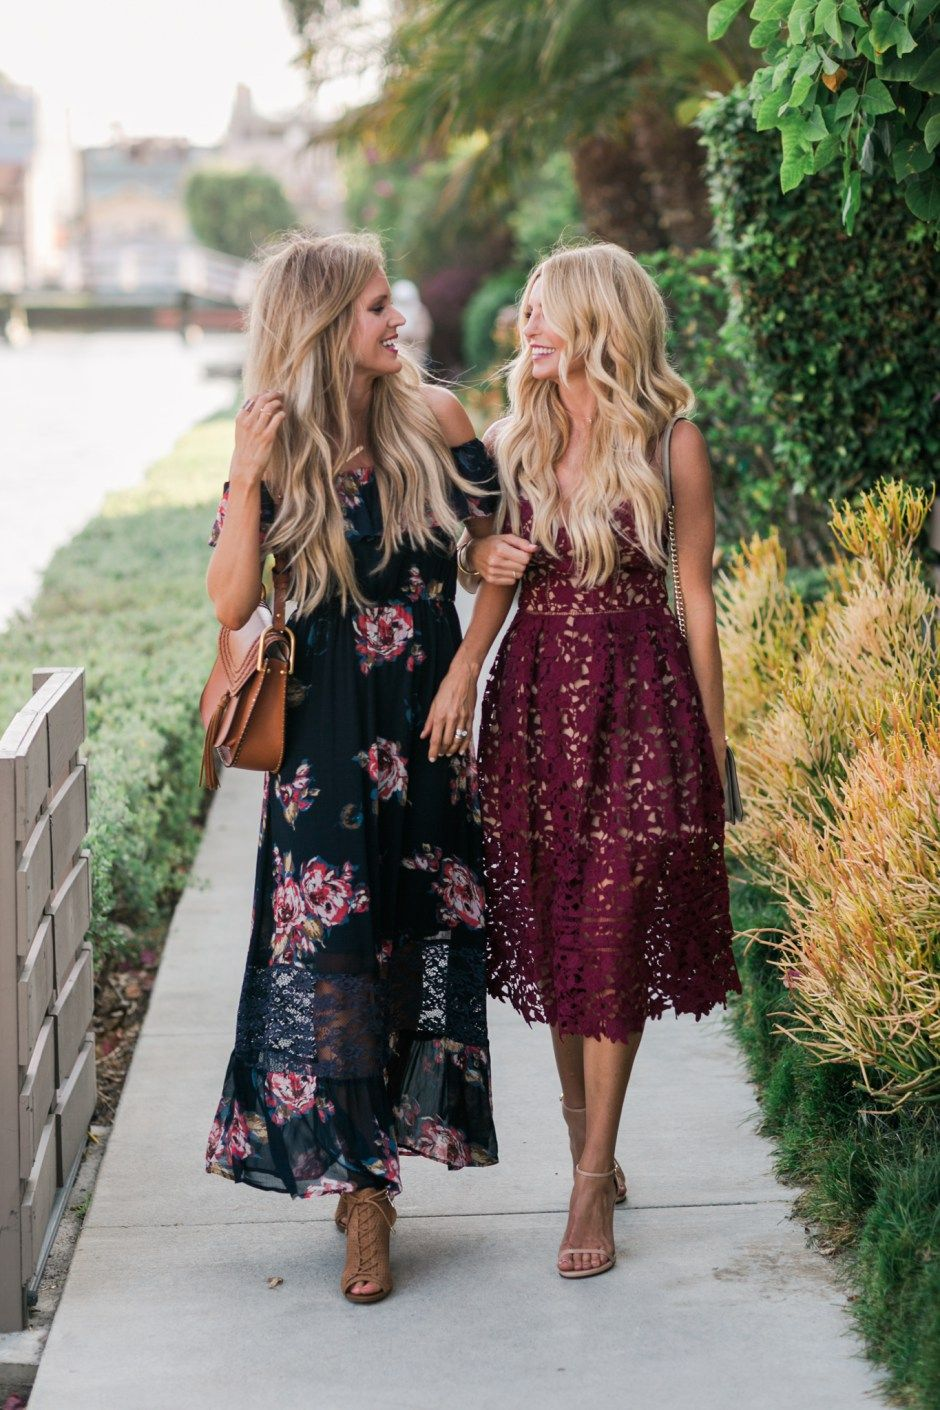 Dresses For A Fall Wedding | We Re Crushing On These Deep Rich Hues For Romantic Summer Weddings